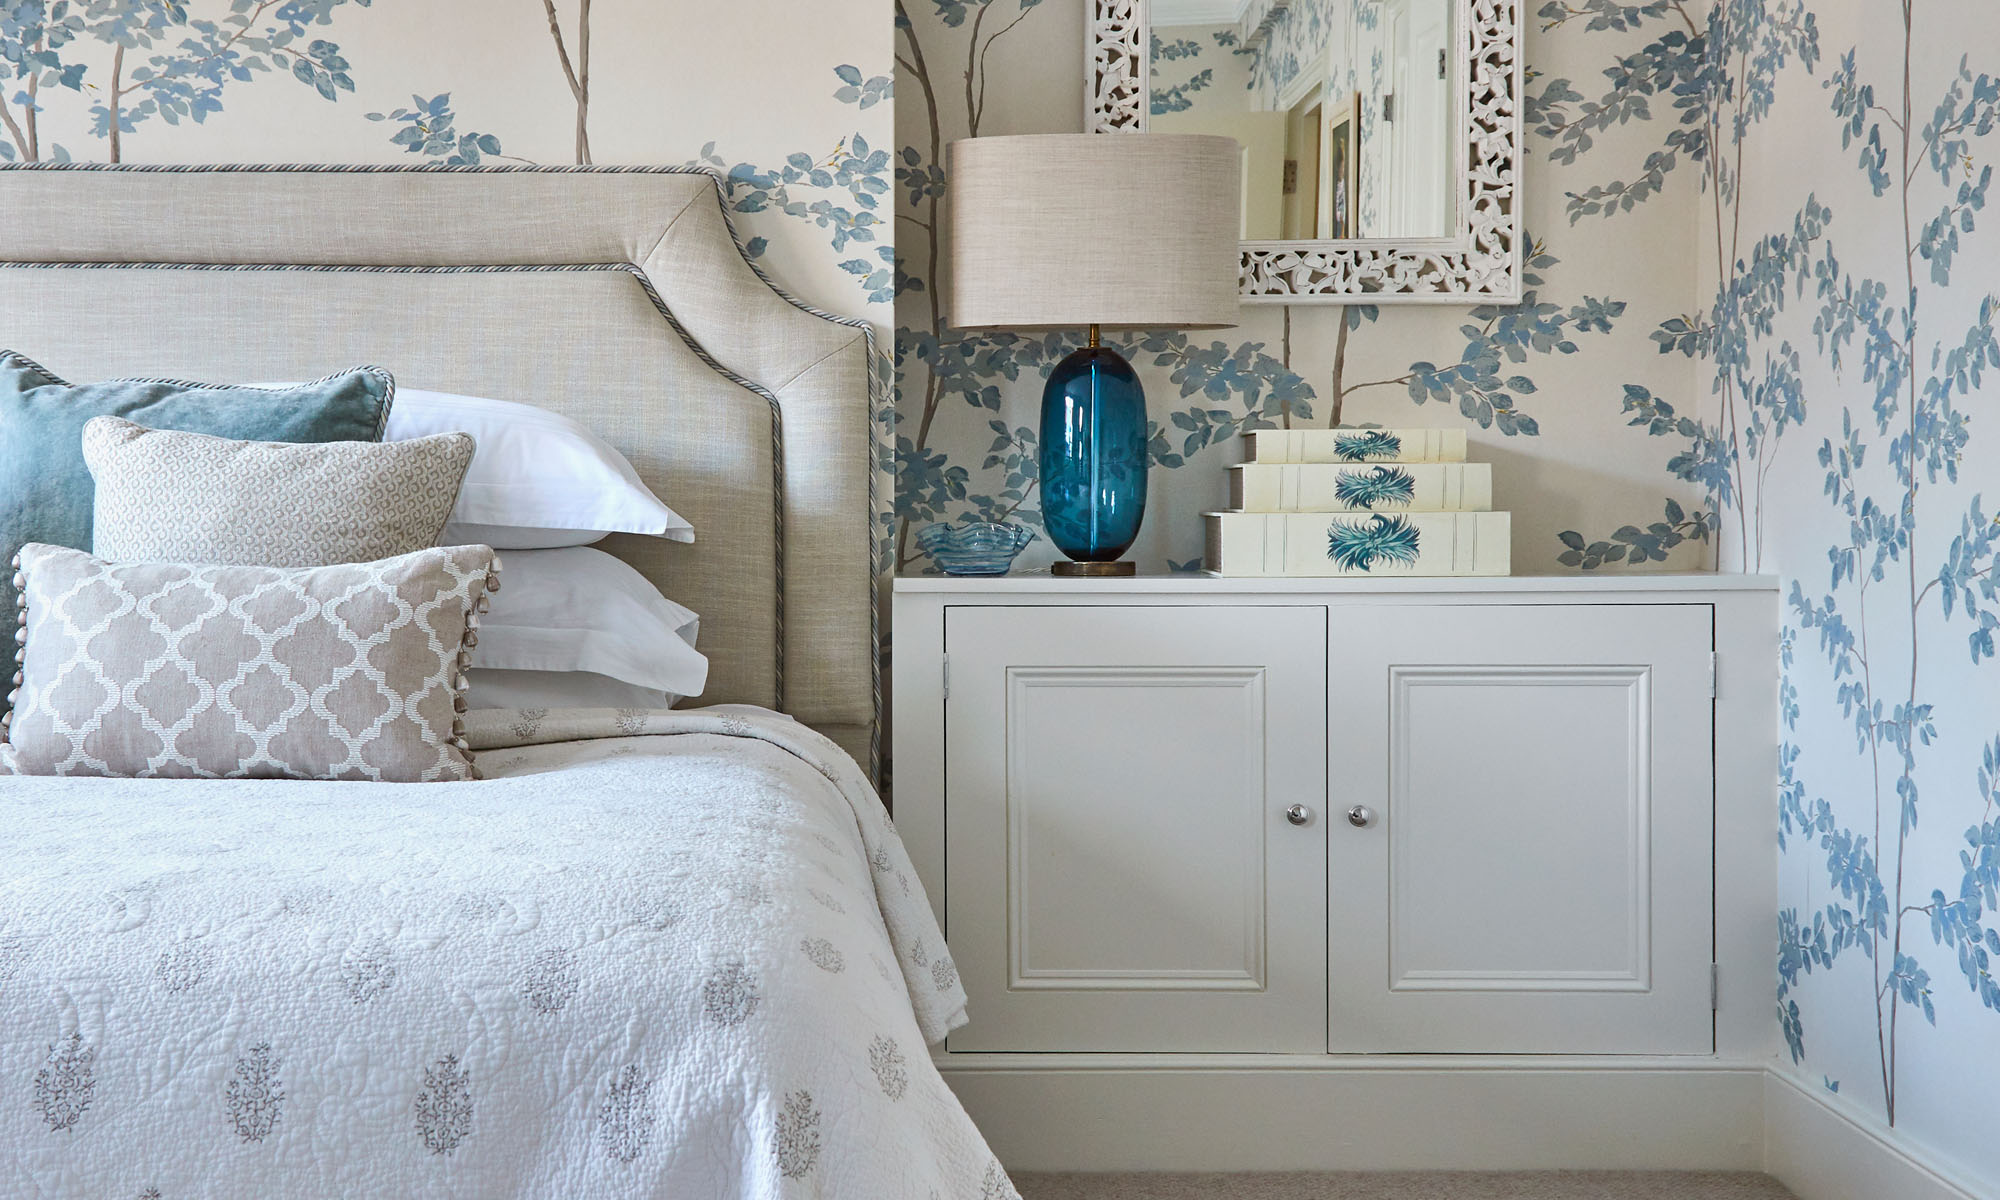 Townhouse Fulham - Lucy Marsh Interiors